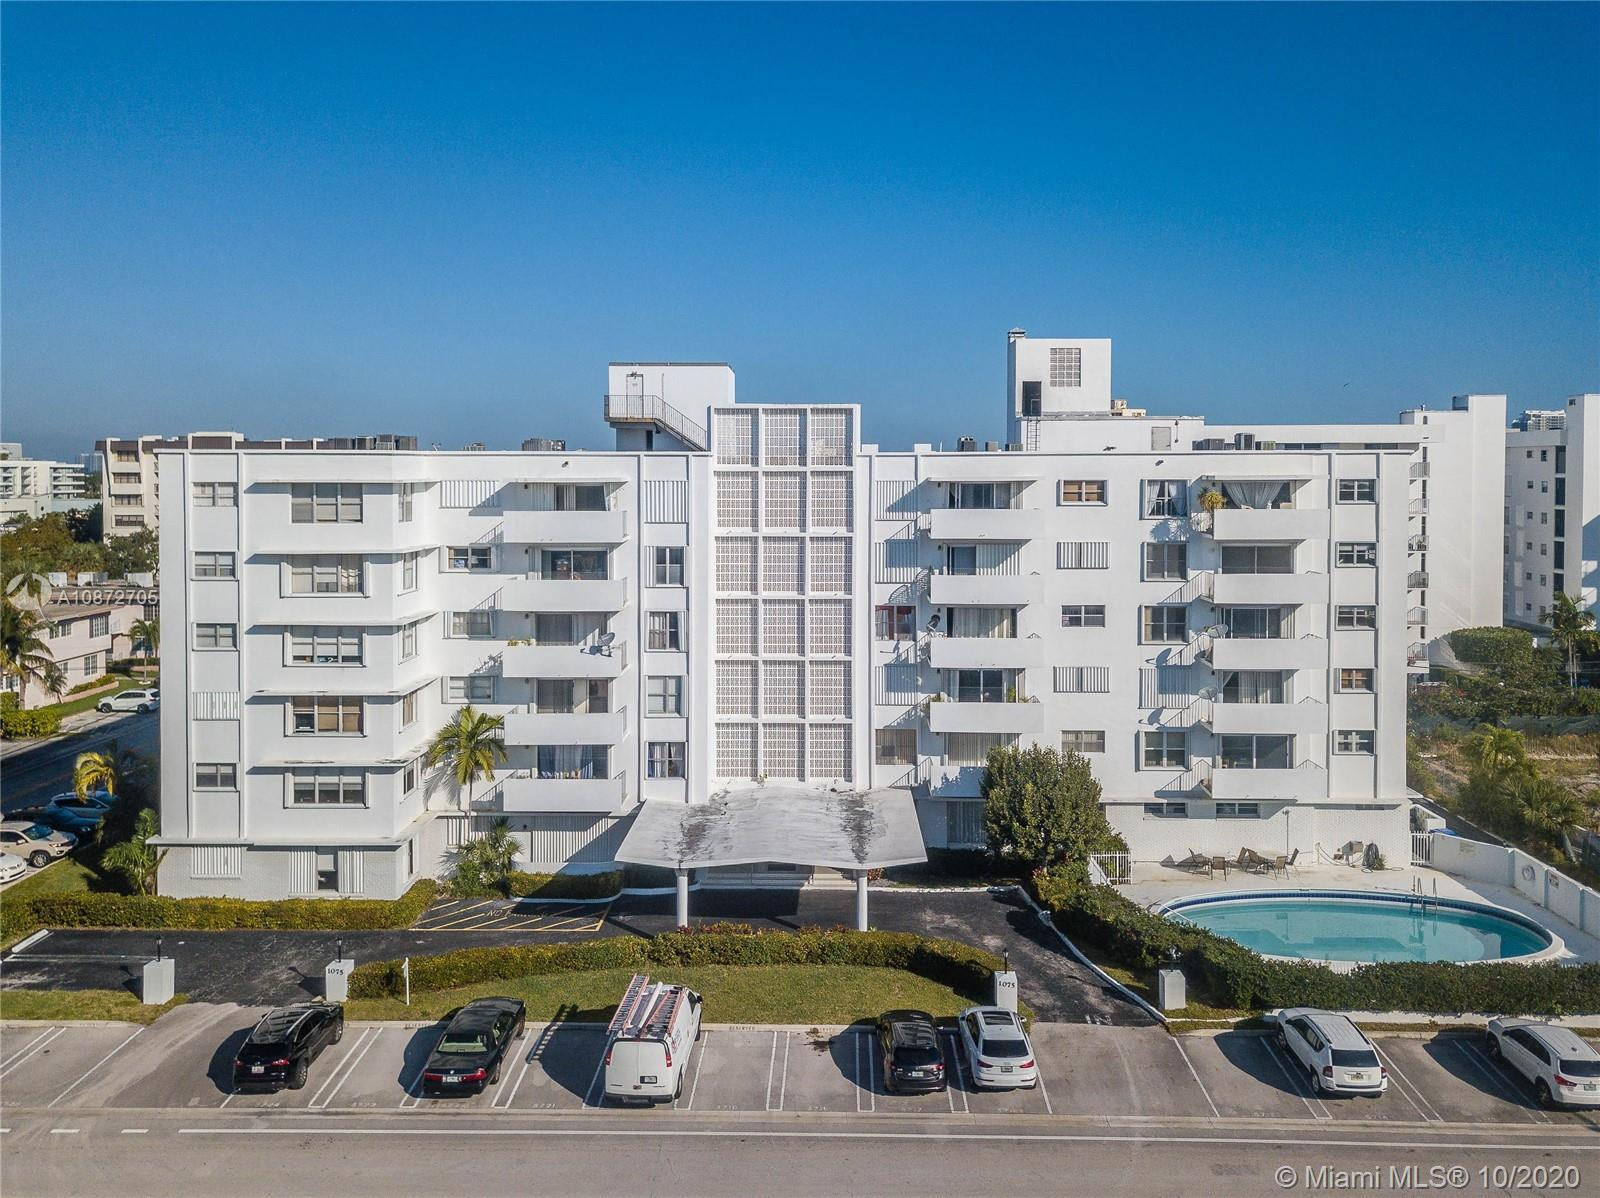 Oversized 1 bedroom 2 full baths condo with nearly 1300 sq ft of living space. Enjoy an abundance of closets, storage space  and open terrace overlooking Bay Harbor Islands and swimming pool. Located within walking distance to top rated K-8 school. Steps to shops, houses of worship, beach and Bal Harbor Shops. Well maintained and pet friendly building.